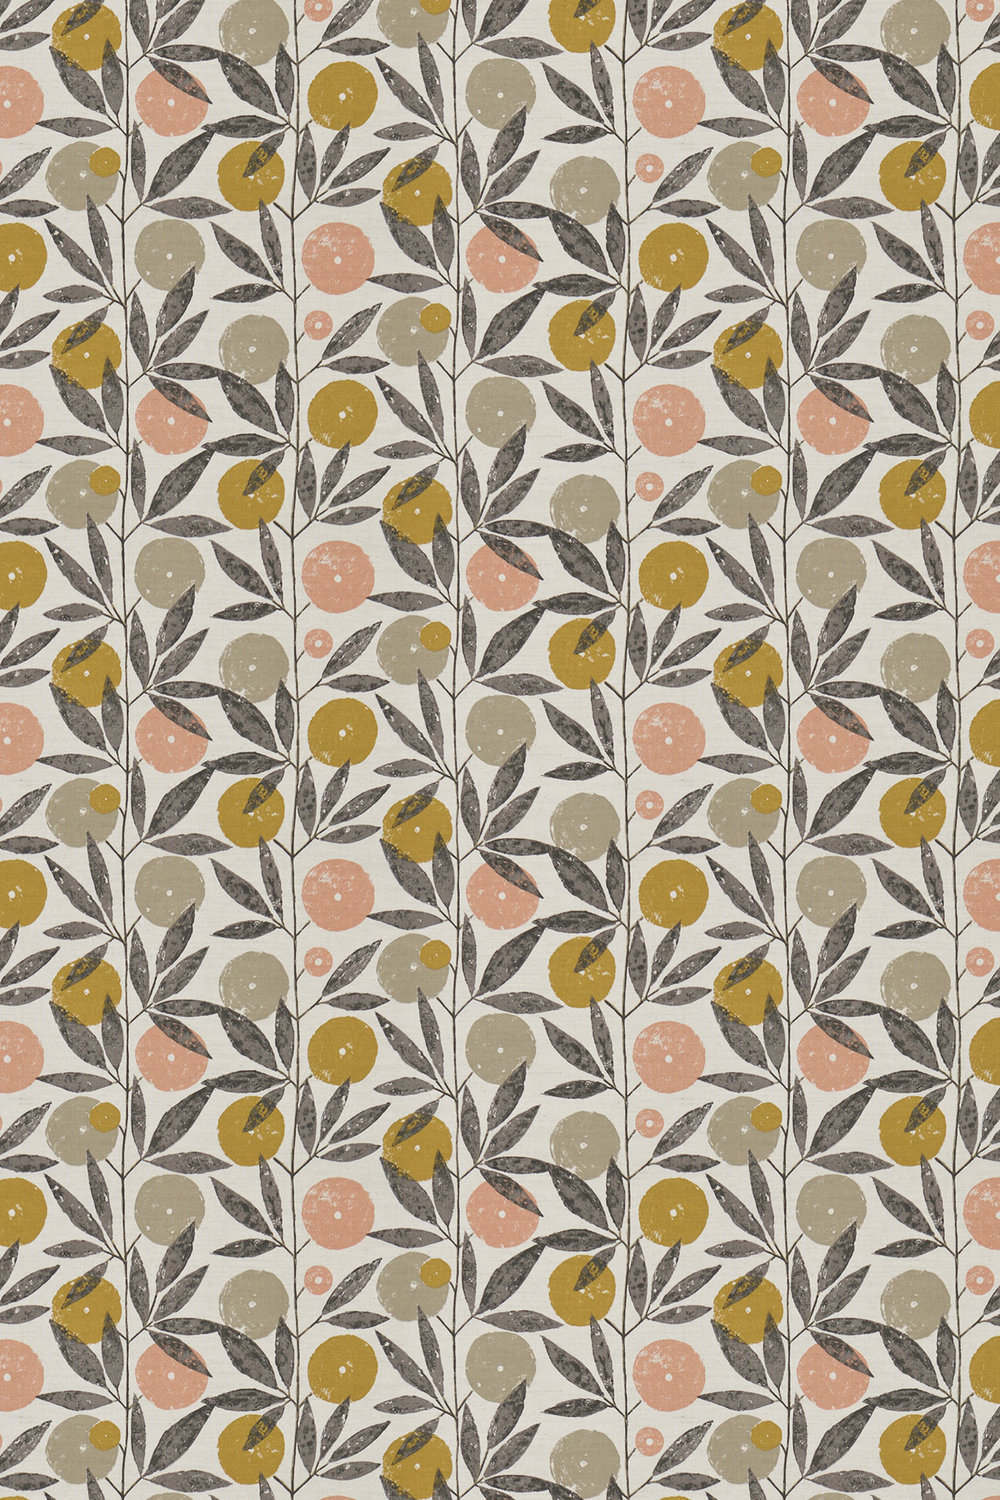 Blomma Fabric - Toffee, Blush and Putty - by Scion